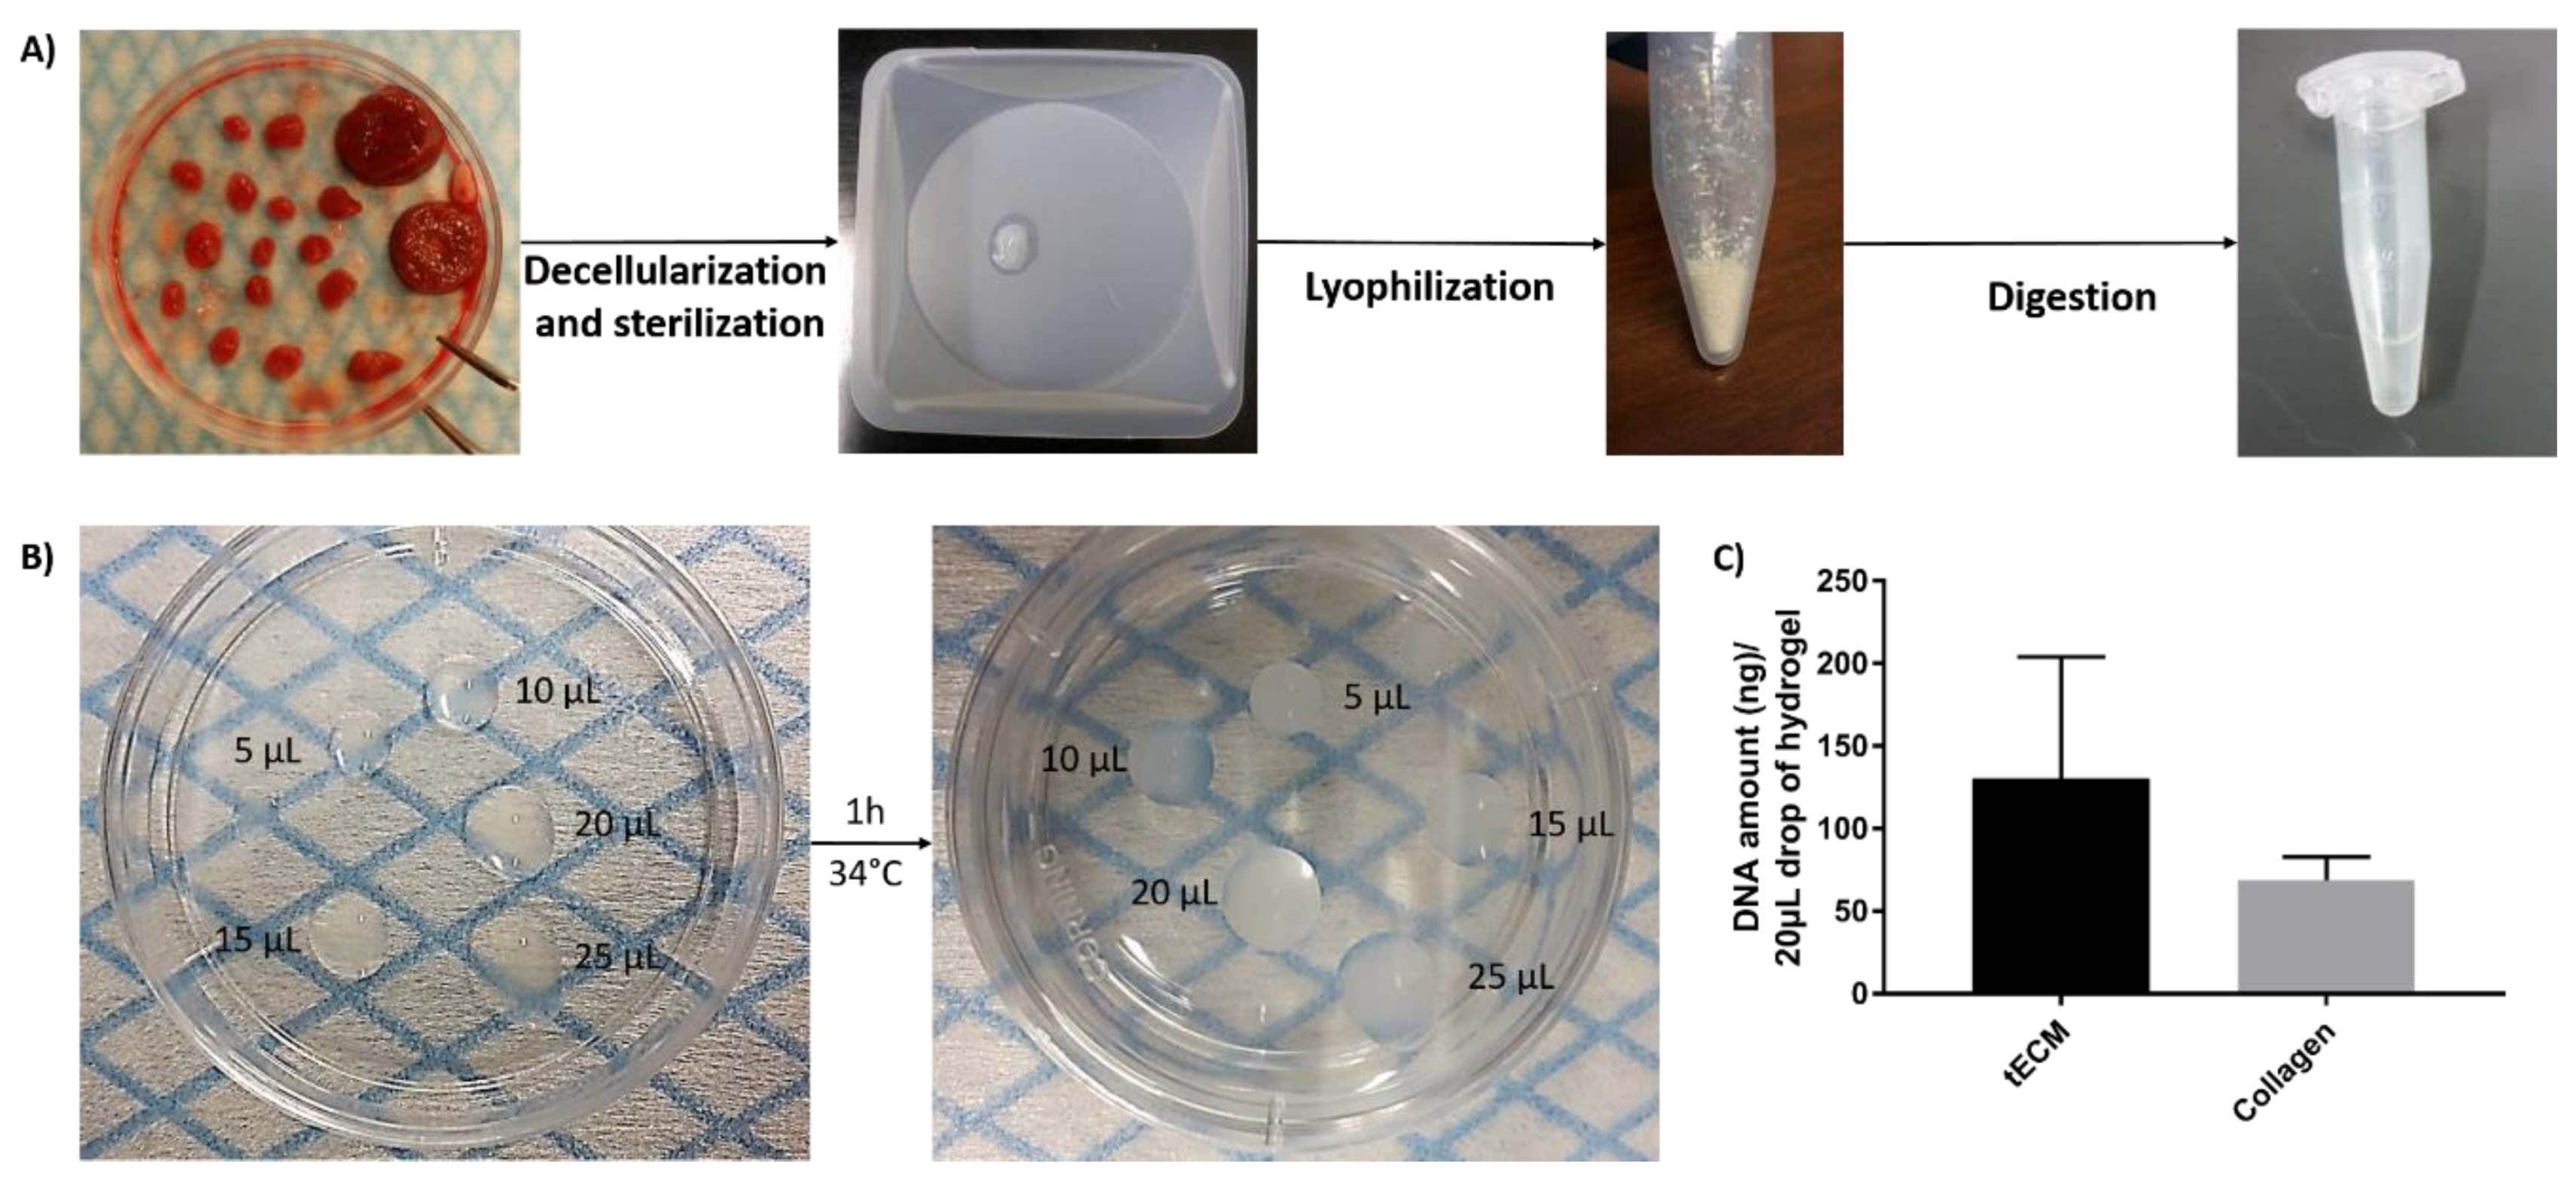 Ijms Free Full Text Generation Of Organized Porcine Testicular Organoids In Solubilized Hydrogels From Decellularized Extracellular Matrix Html